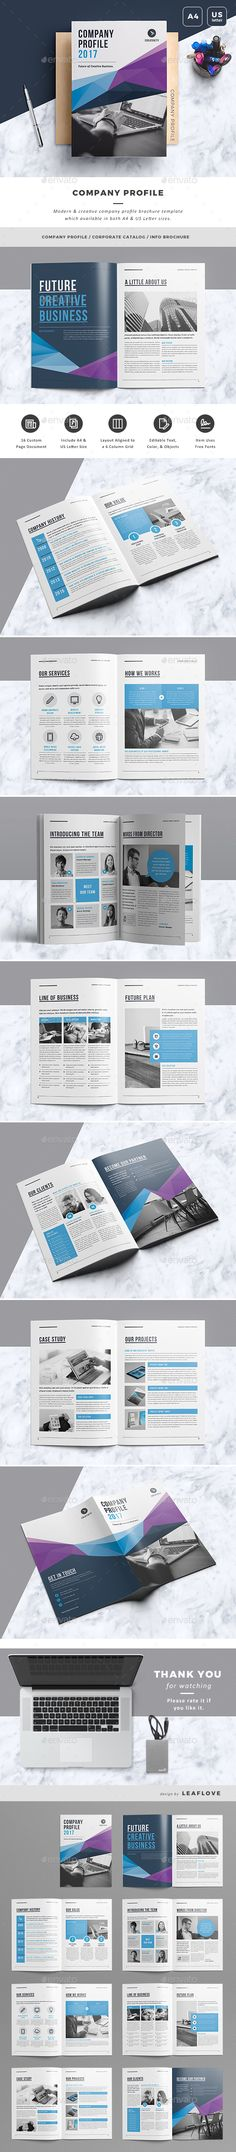 Daleman Company Profile Company profile, Indesign templates and - profile company template